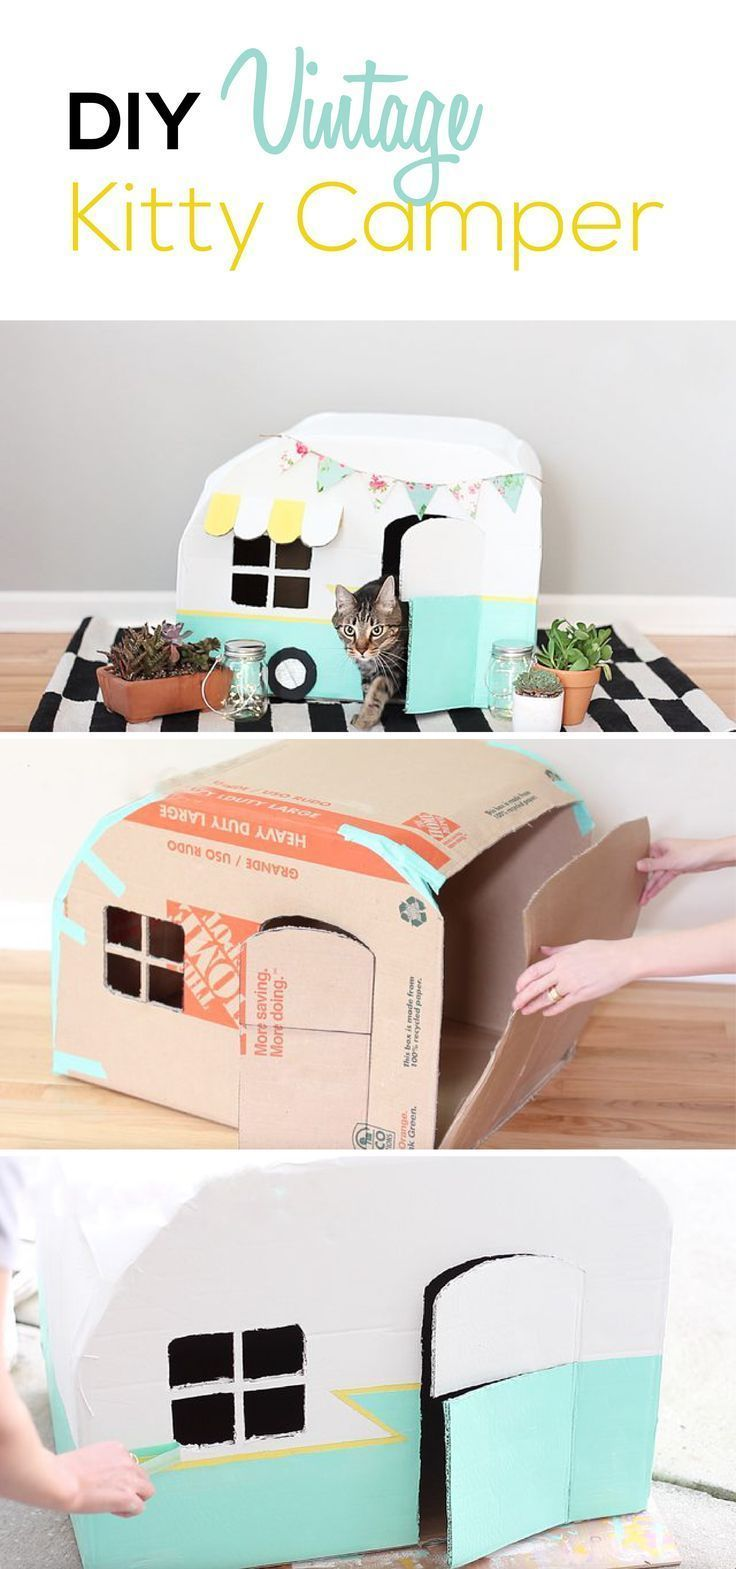 Photo of How To Make A Vintage Kitty Camper From Cardboard Boxes | Cuteness